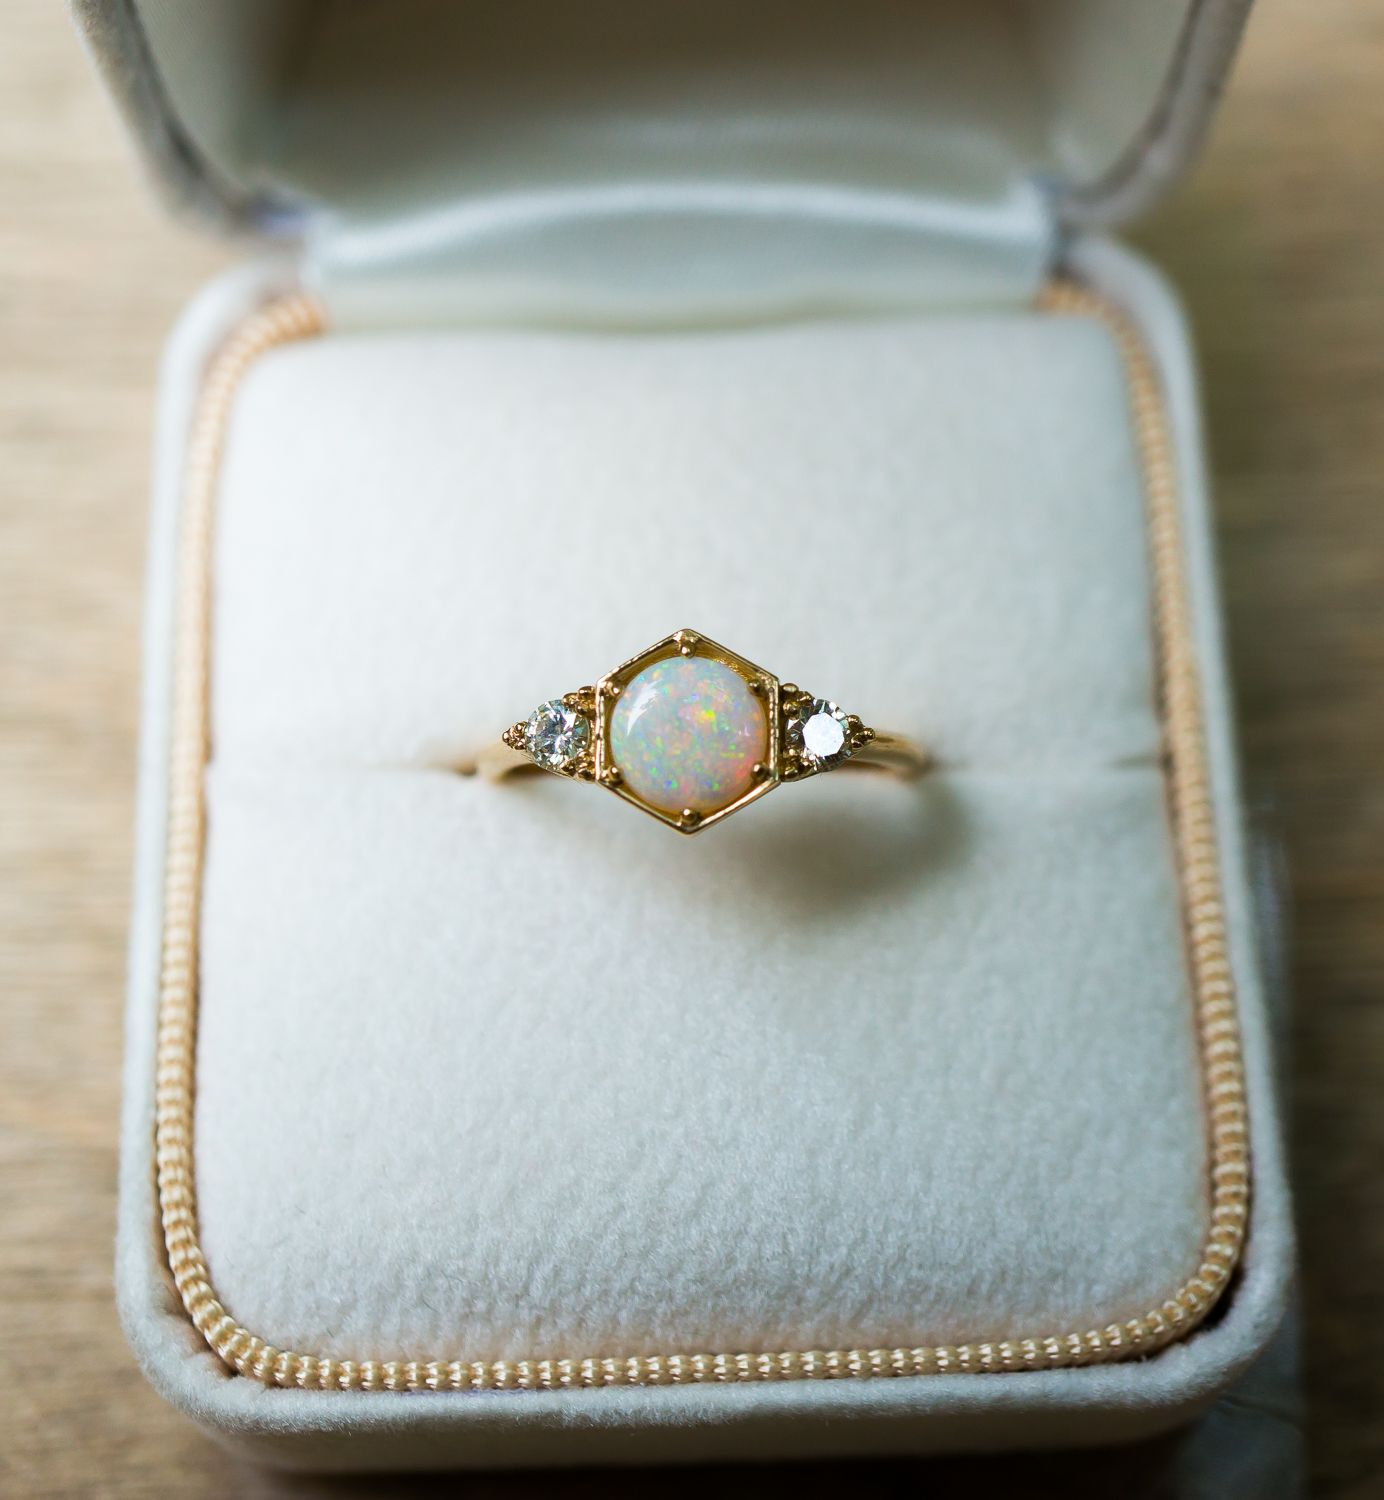 A Bespoke Opal Engagement Ring By S Kind Co With Vintage Diamonds And Australia Engagement Rings Opal Colored Engagement Rings Vintage Opal Engagement Ring